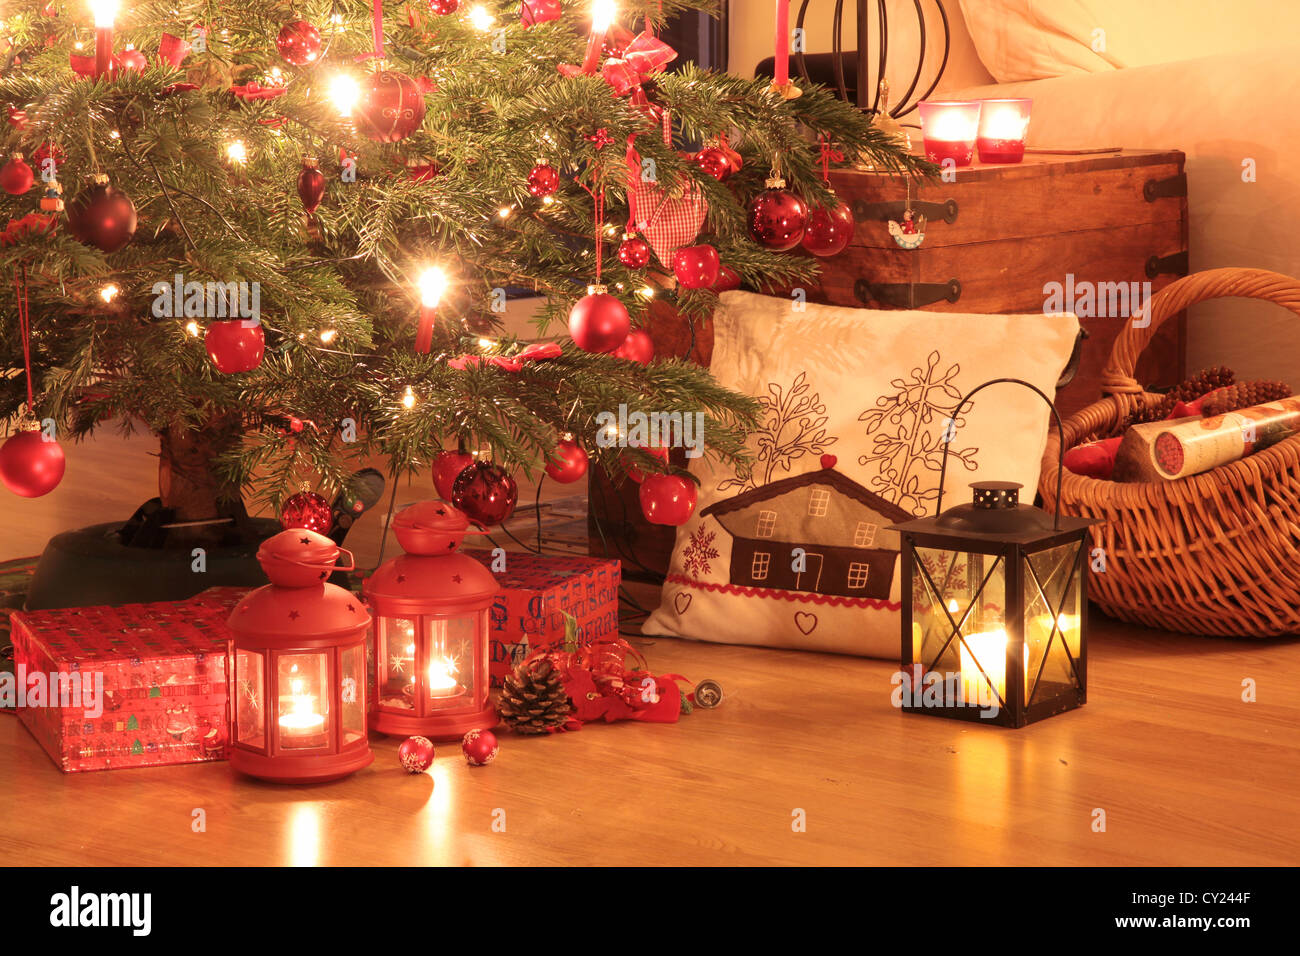 Christmas gifts in red under the Christmas tree - Stock Image